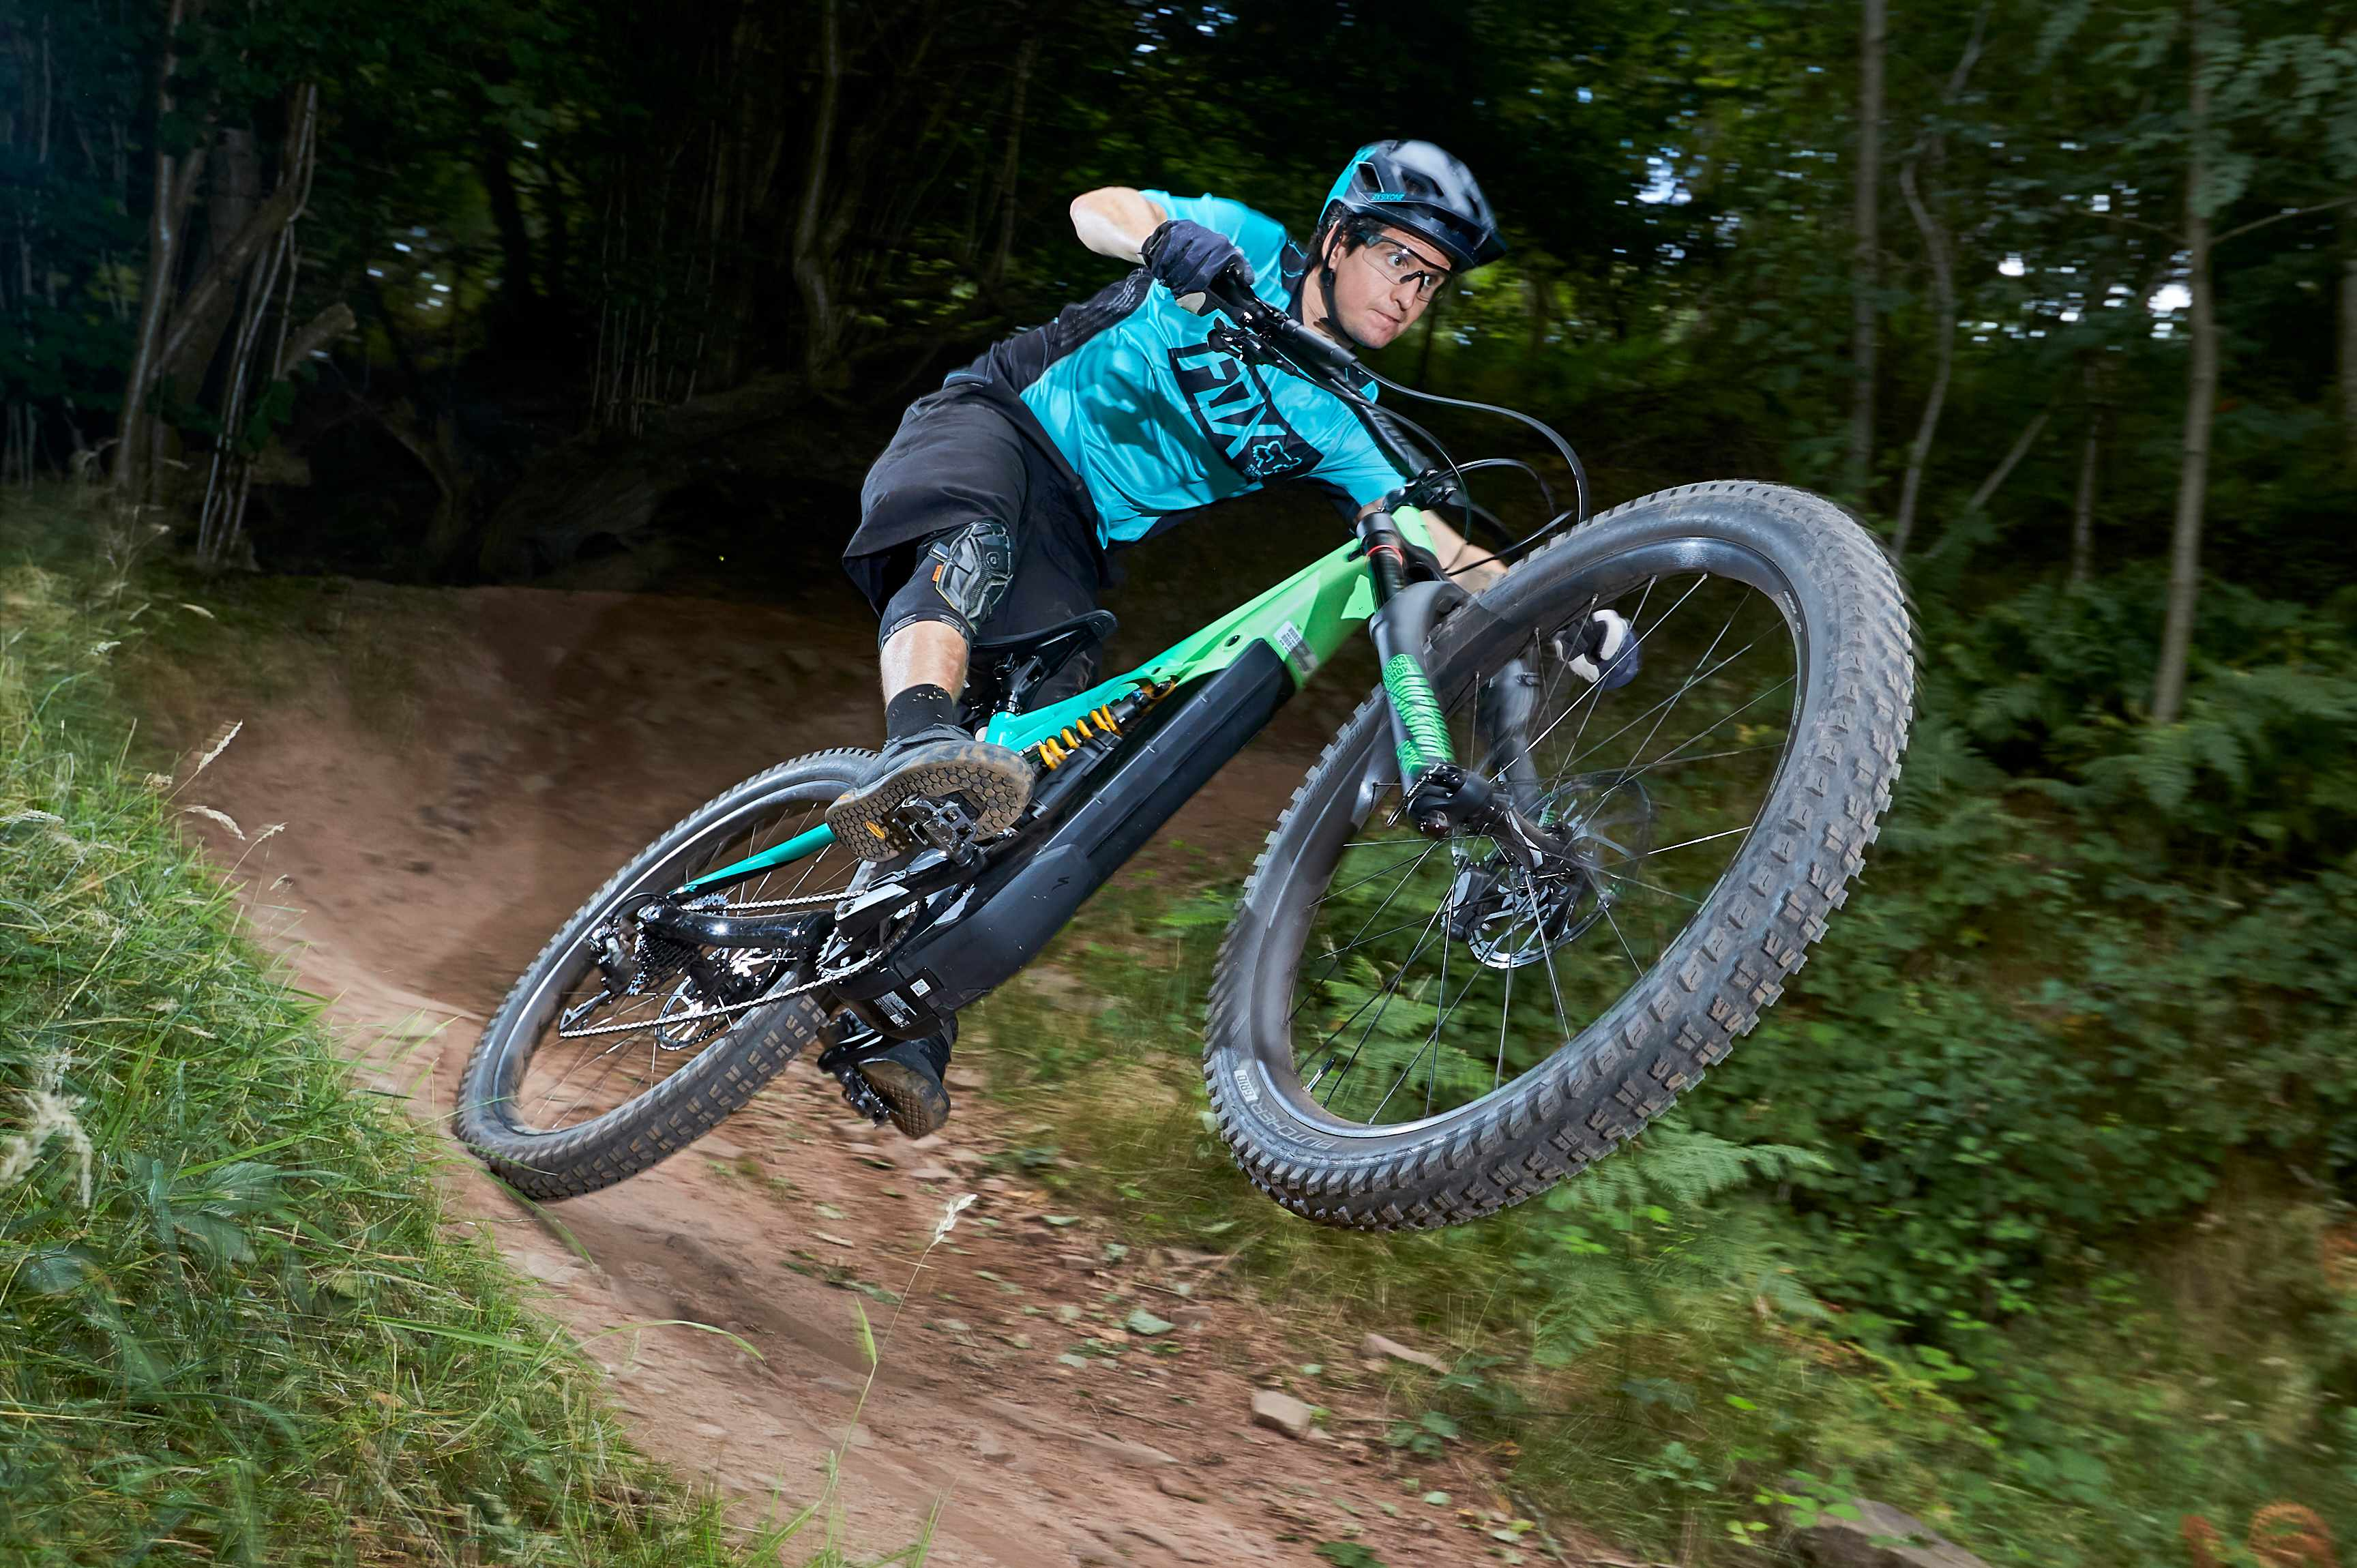 Staff Writer Luke rips a turn at Black Mountain Cycle Centre on the Specialized Kenevo e-bike, for the cover of MBUK, issue 360